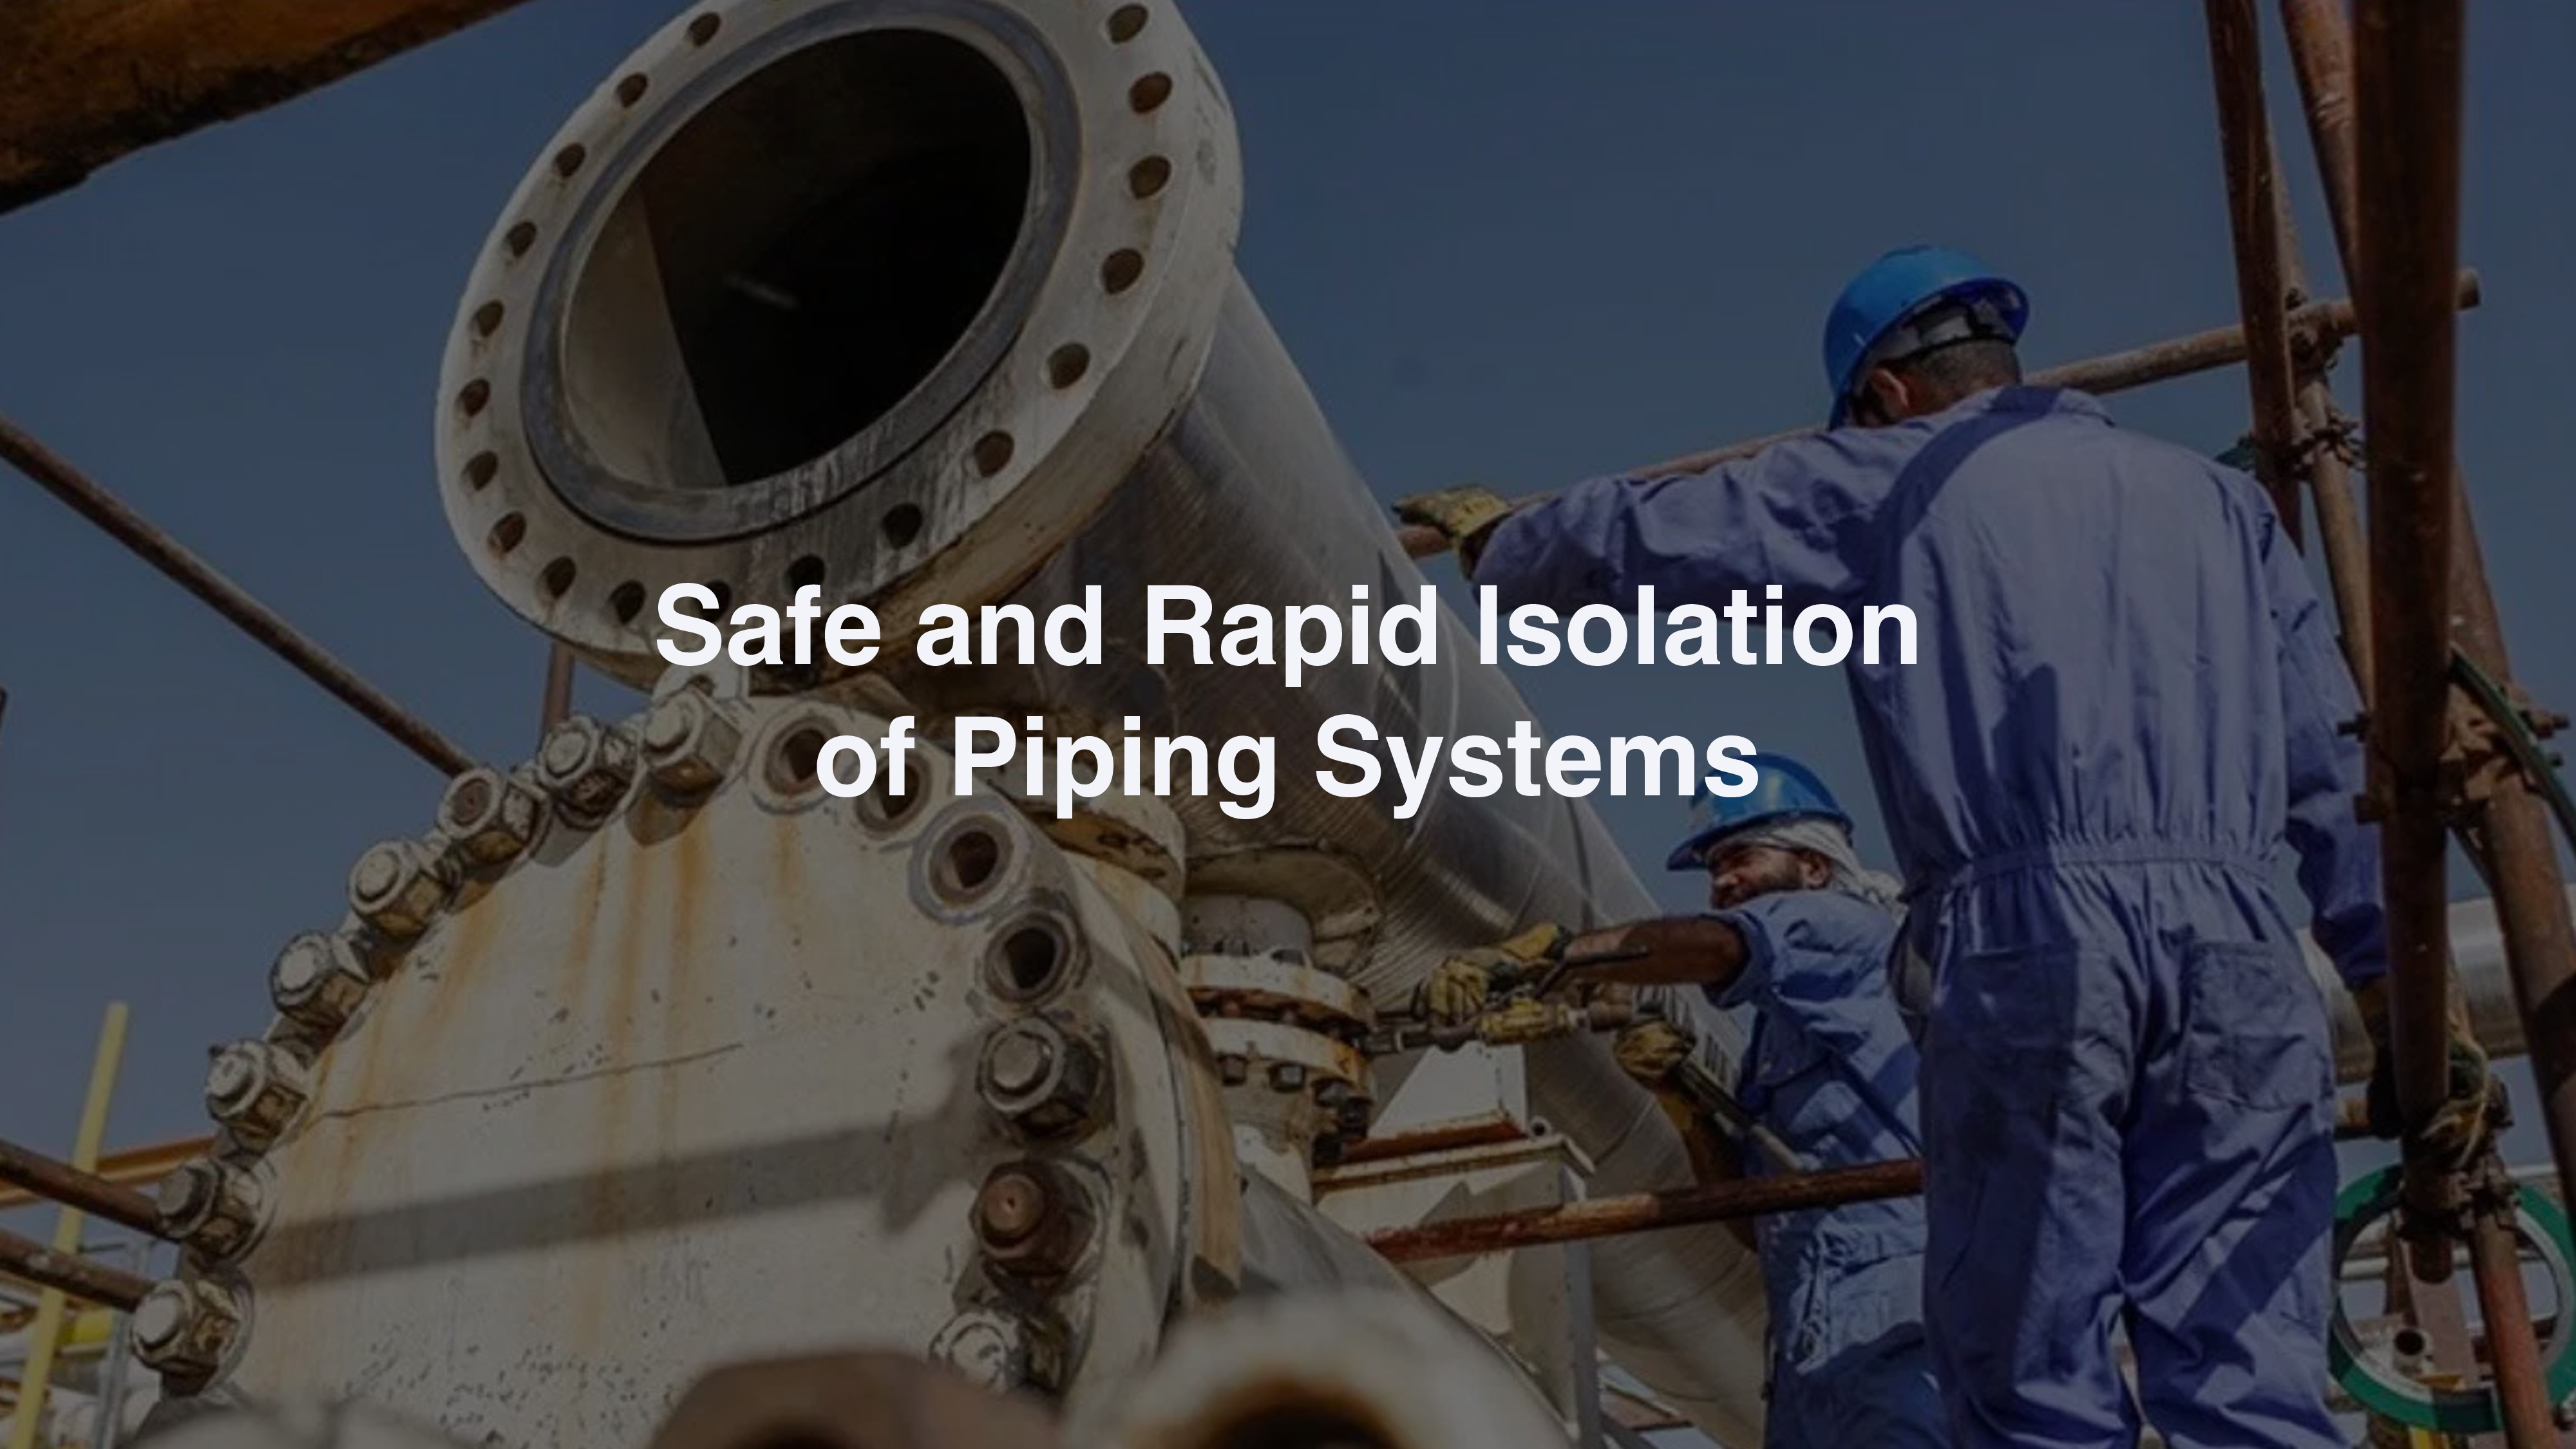 Safe and Rapid Isolation of Piping Systems